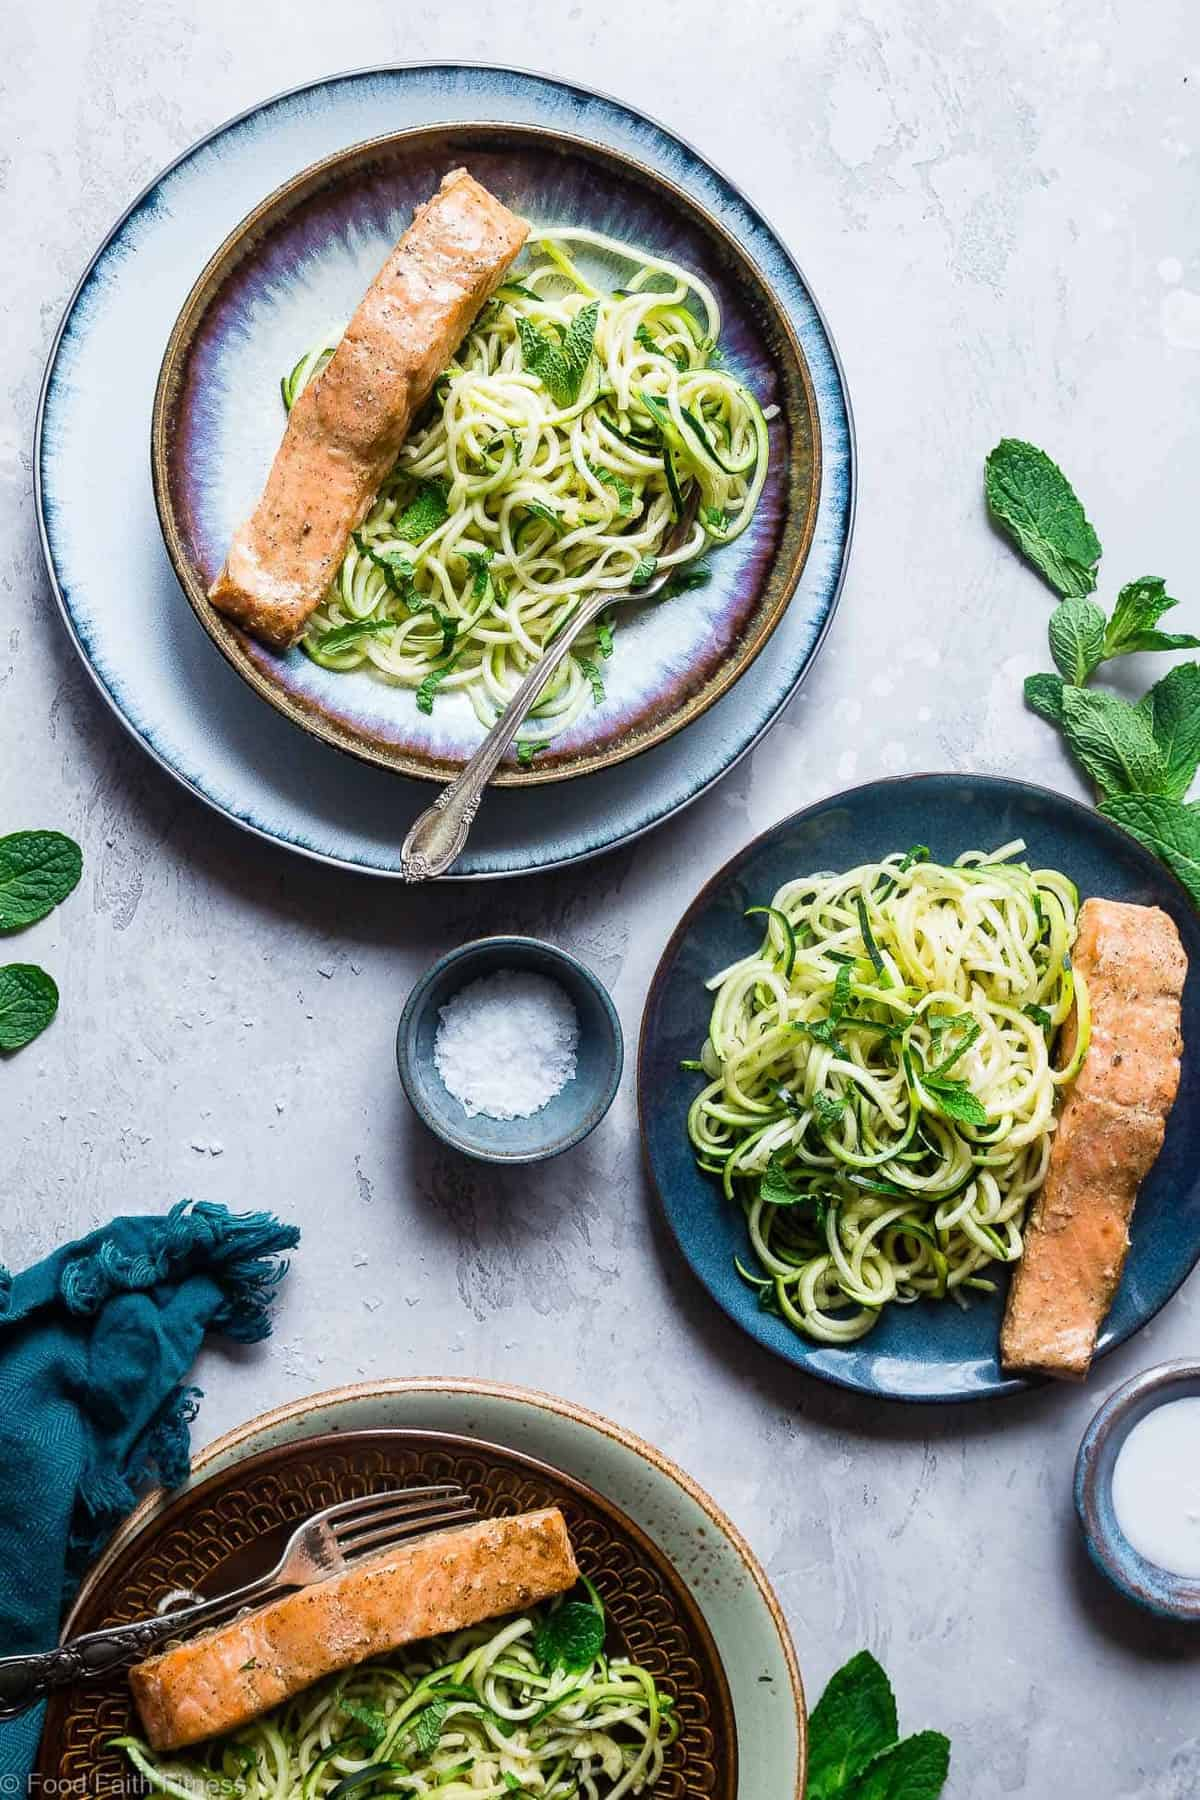 Whole30 Indian Salmon Curry Zucchini Noodles - A SUPER easy, 5-ingredient, healthy meal that is paleo, gluten free, low carb and whole30 compliant! Perfect for busy weeknights! | #Foodfaithfitness | #Paleo #Lowcarb #Whole30 #Healthy #Keto